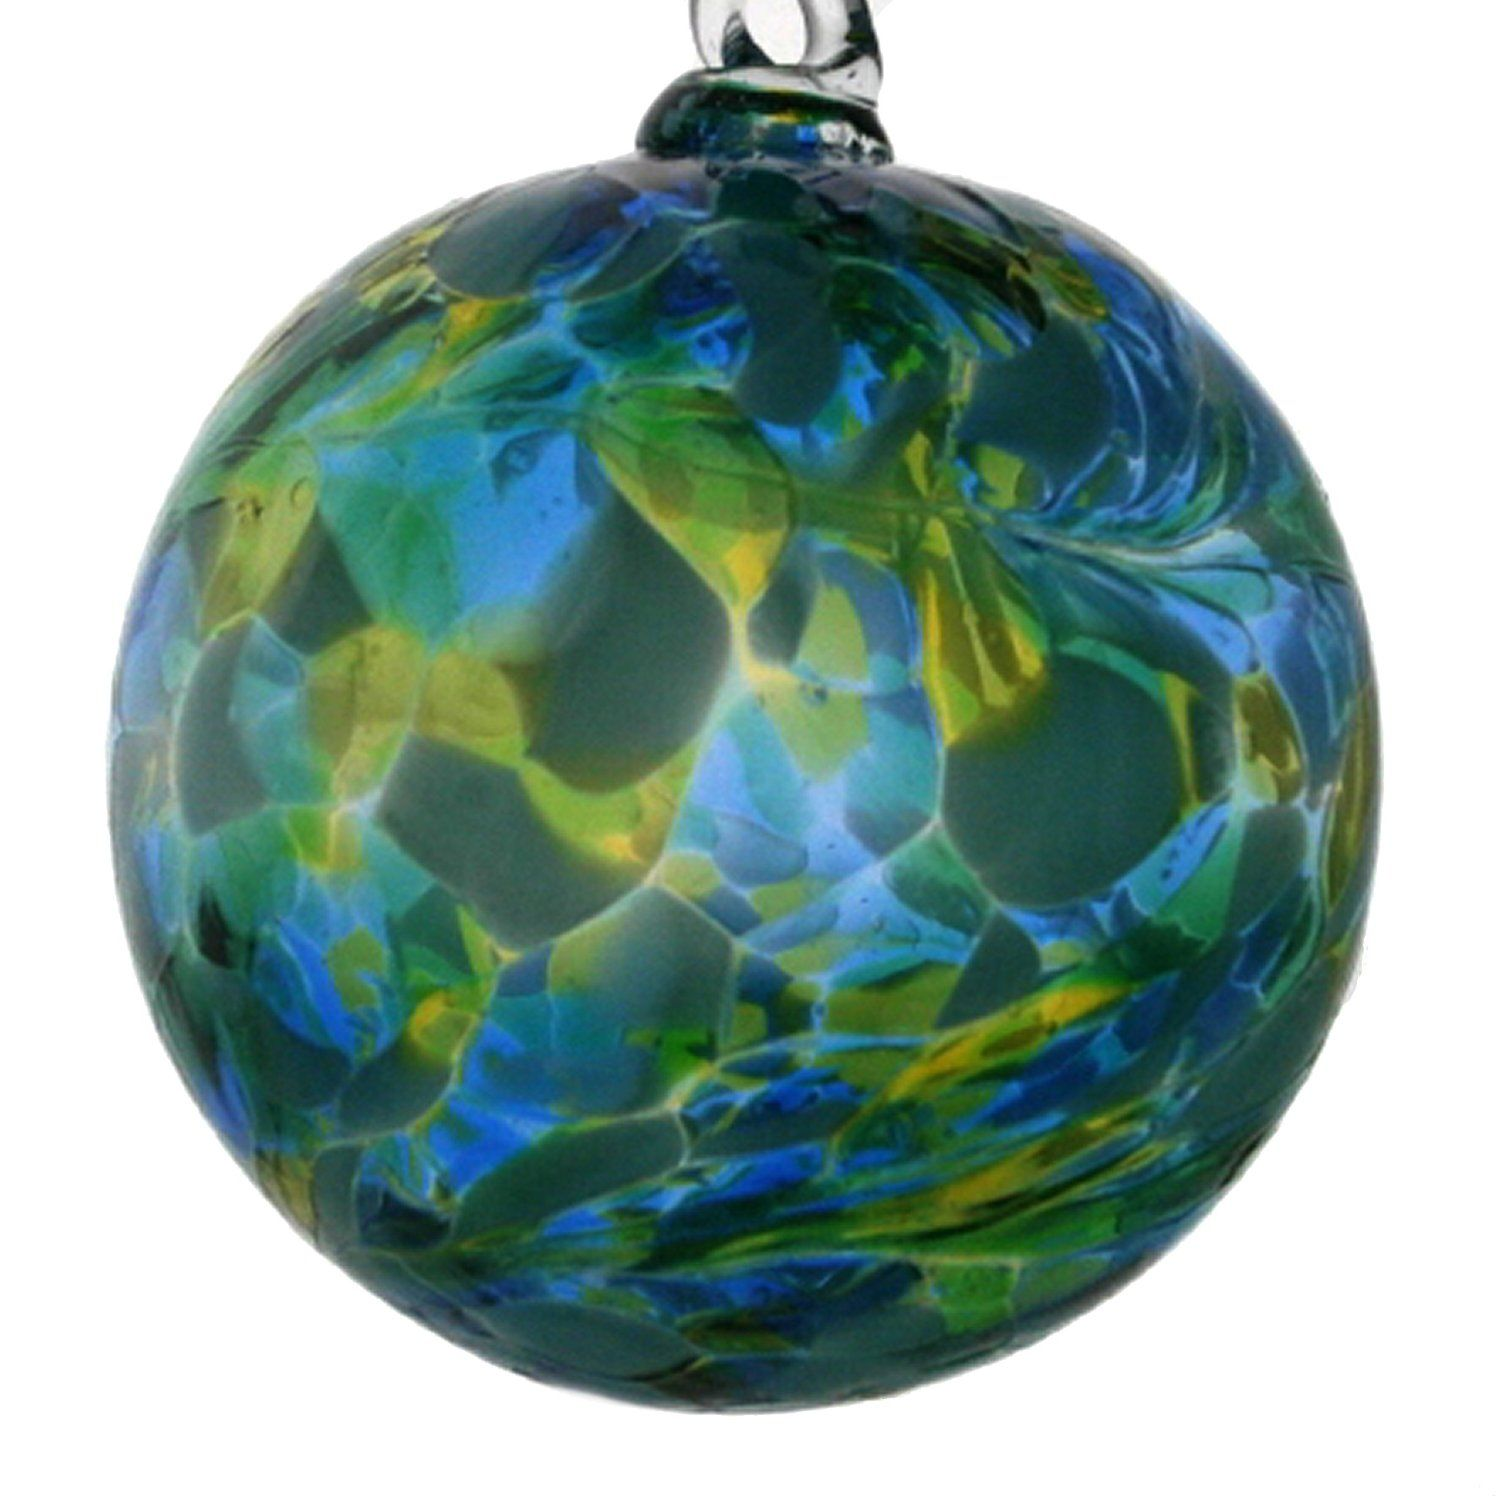 Friendship ball ornament - Hanging Glass Friendship Ball 8cm Green And Blue Amazon Co Uk